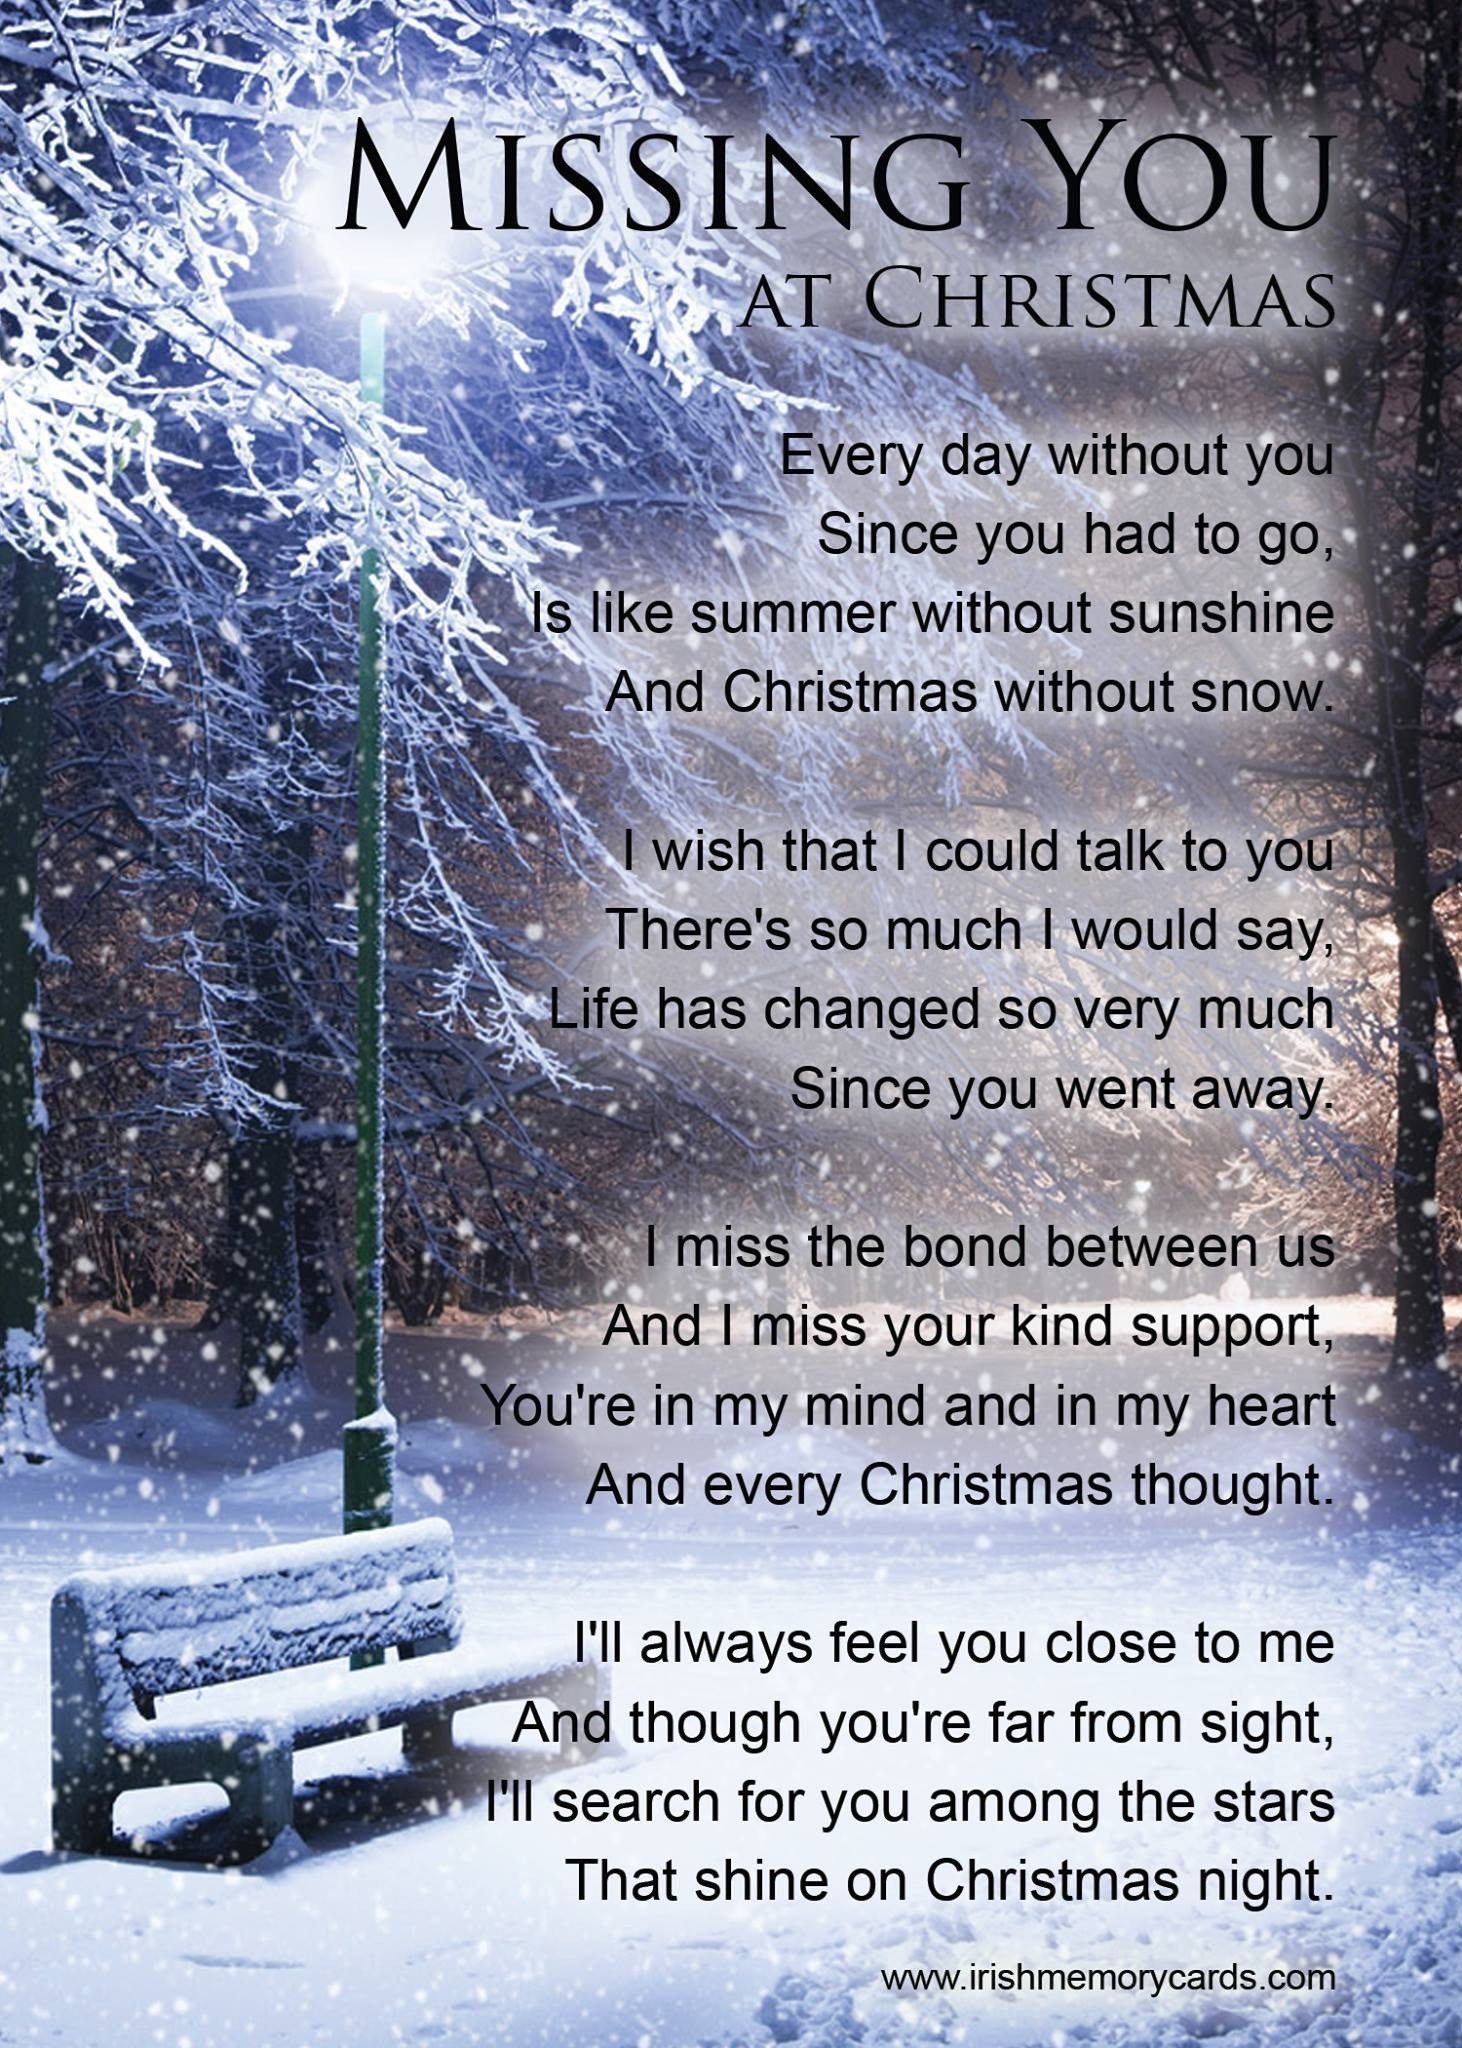 Christmas without you.